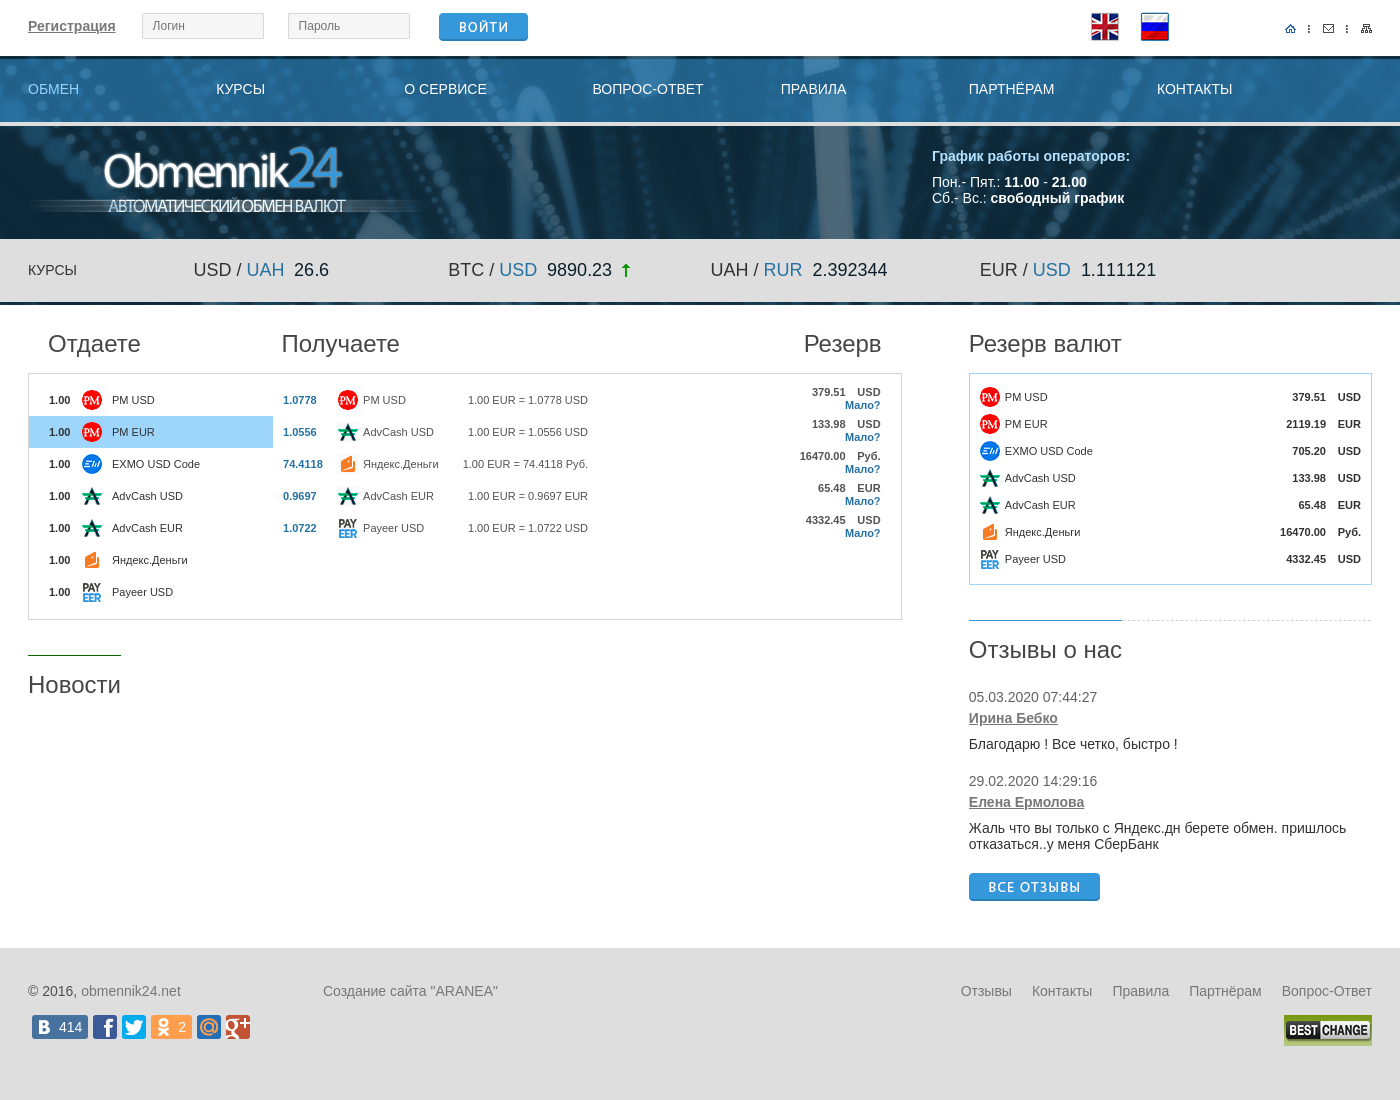 obmennik24 user interface: the home page in English